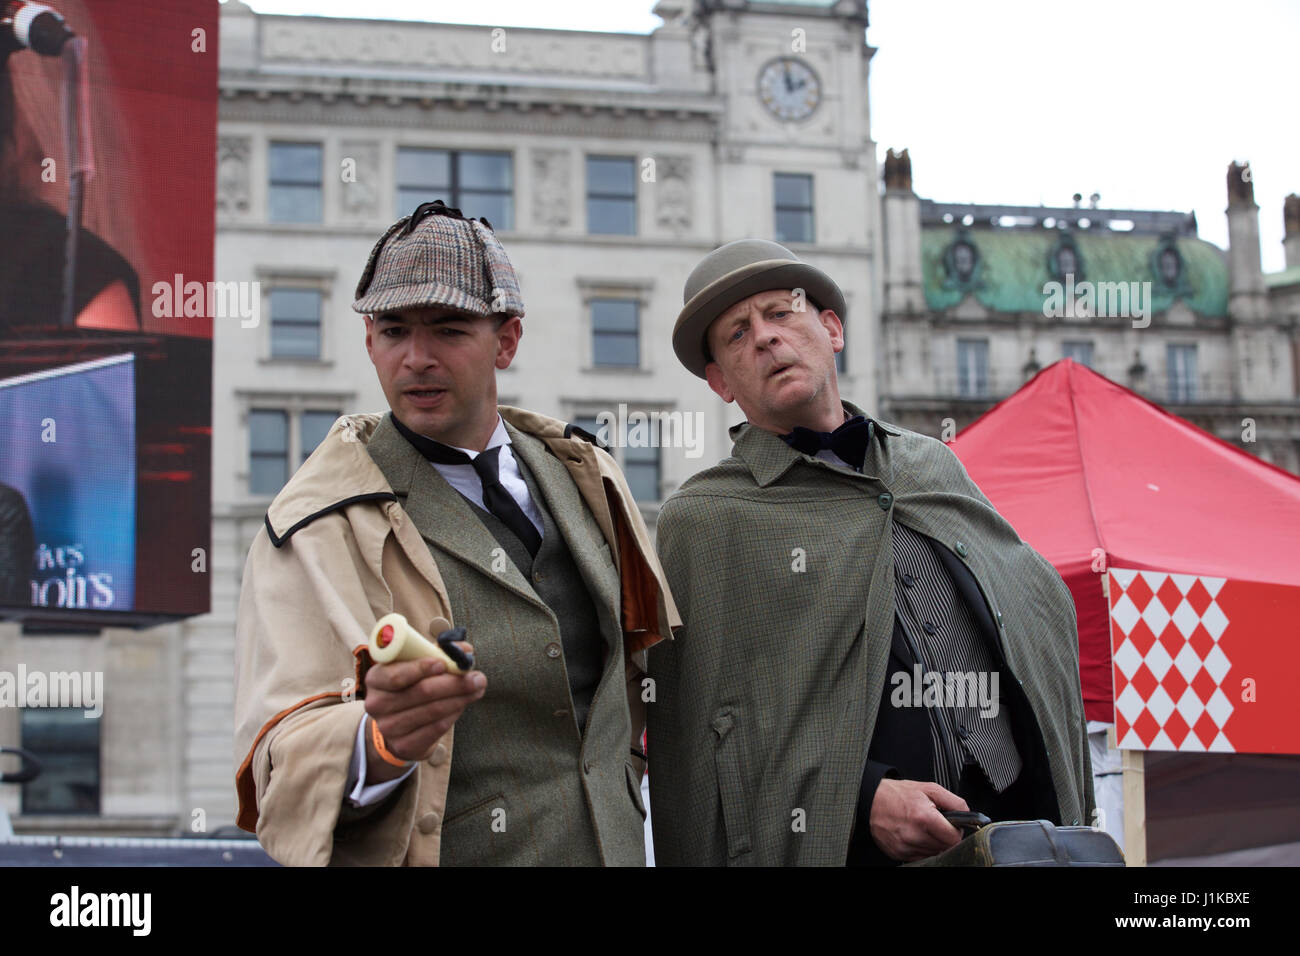 Trafalgar Square,UK,22nd April 2017,Sherlock Holmes and Dr Watson attend The Annual Feast of St George celebrations - Stock Image